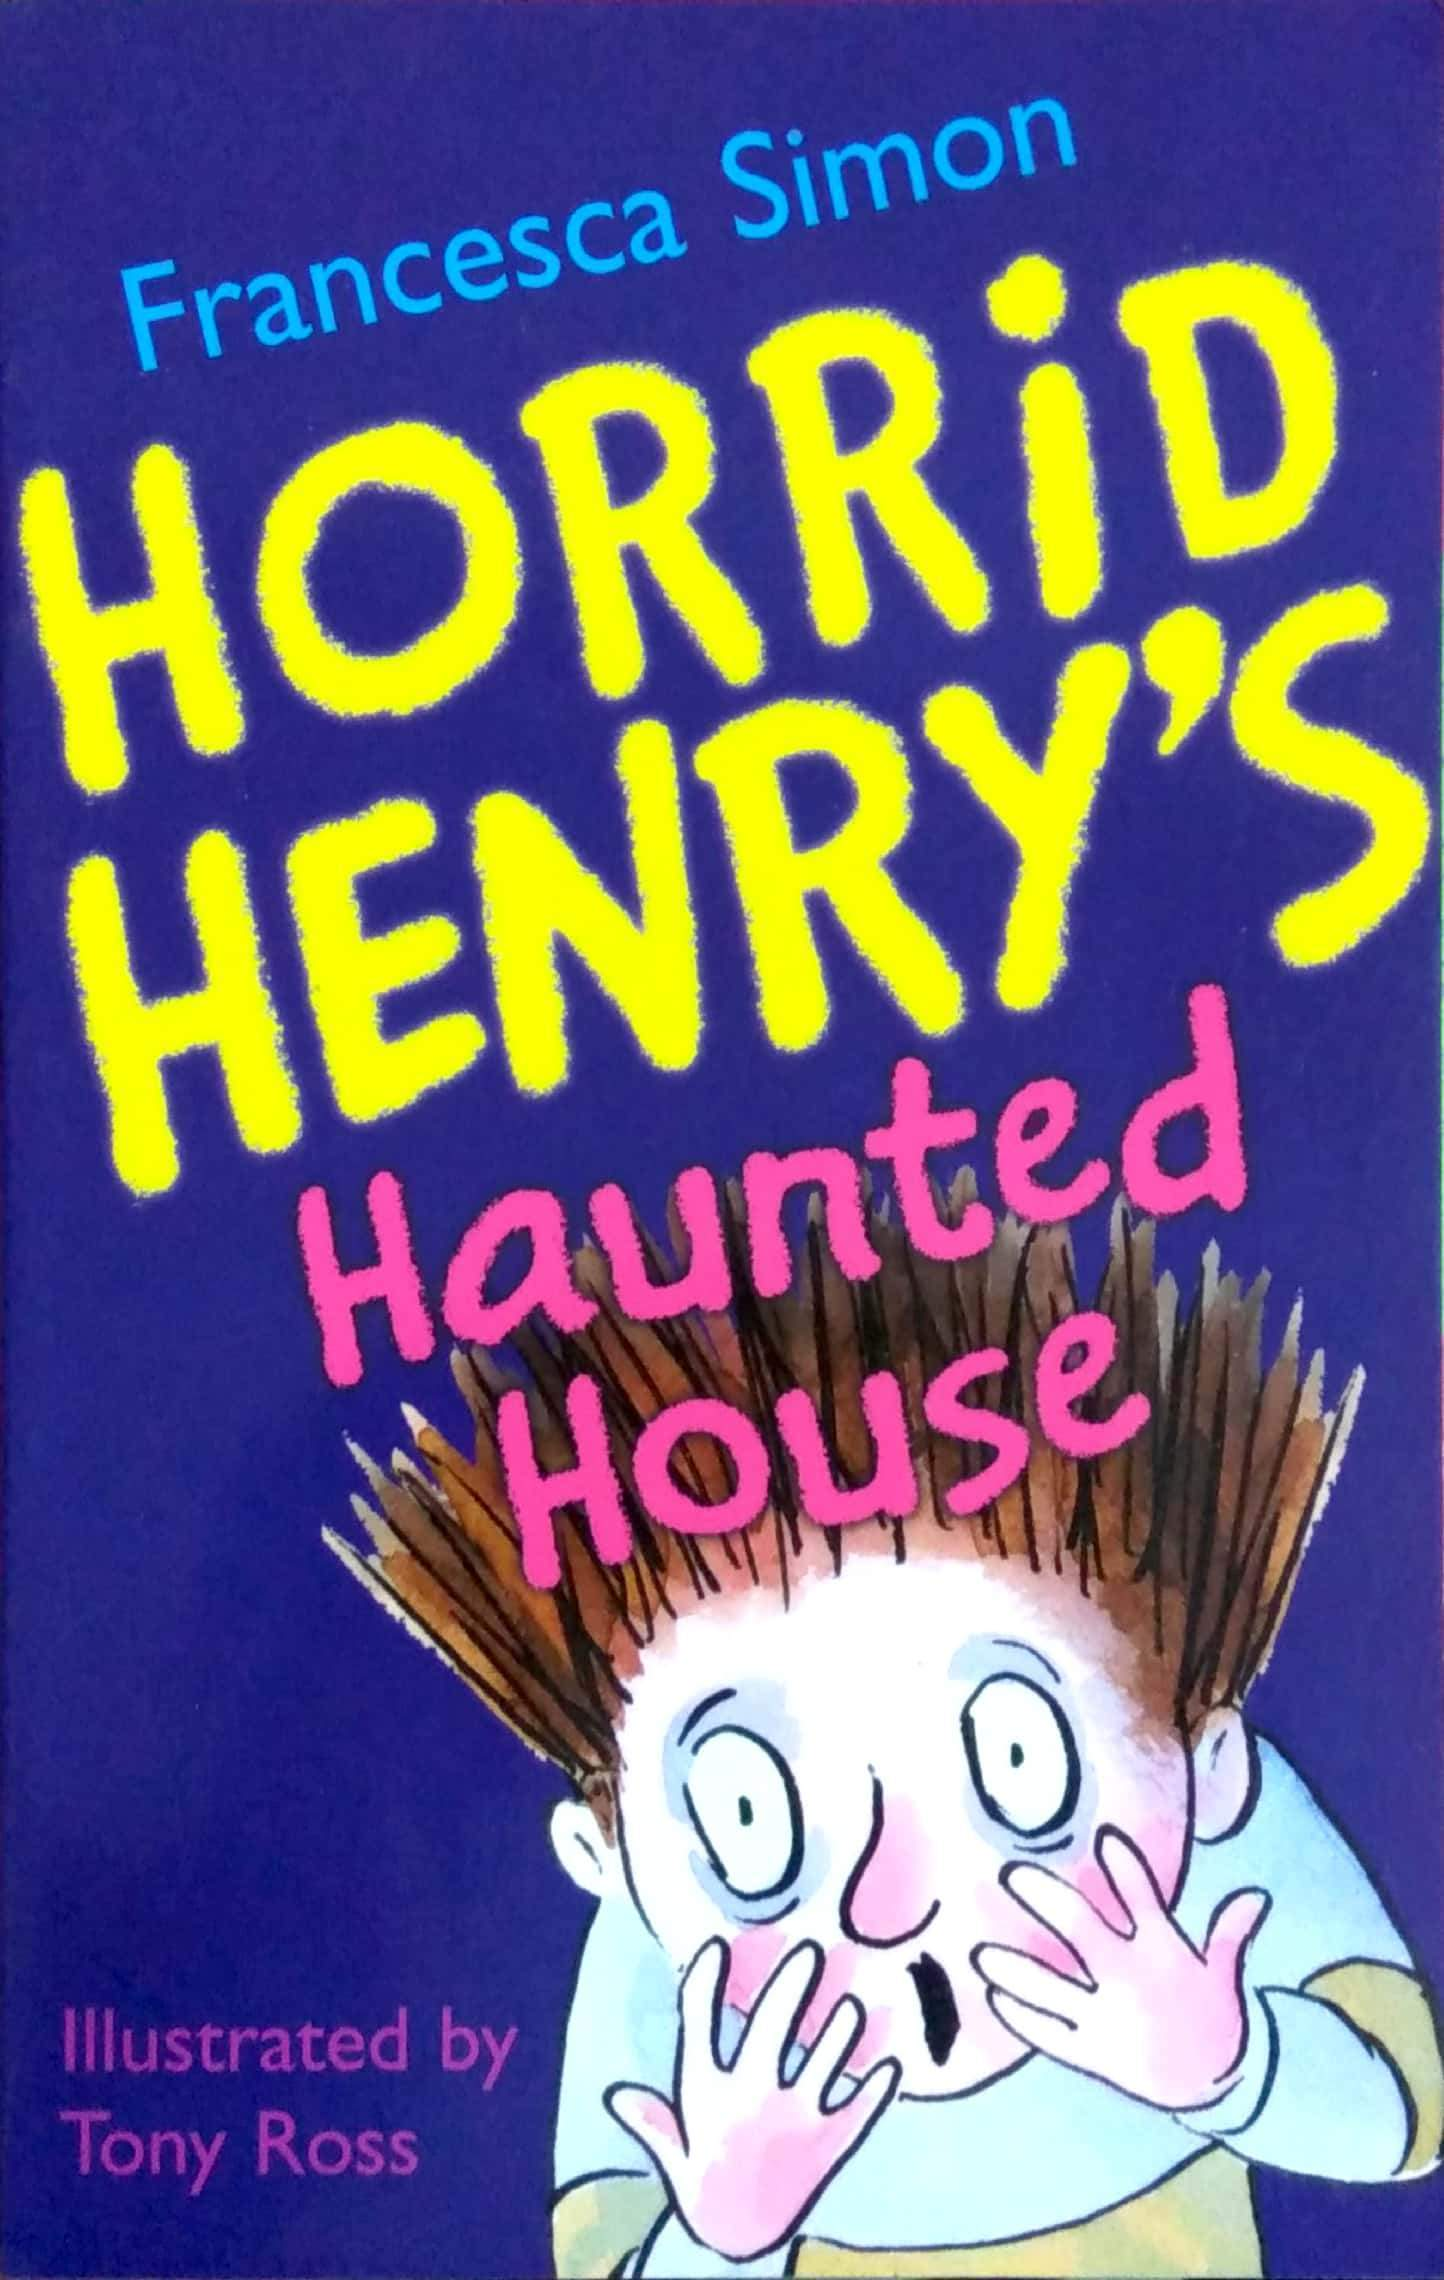 Buy Horrid Henry's Haunted House (Horrid Henry #6) book online at low Books Bookish Santa 9781858816500